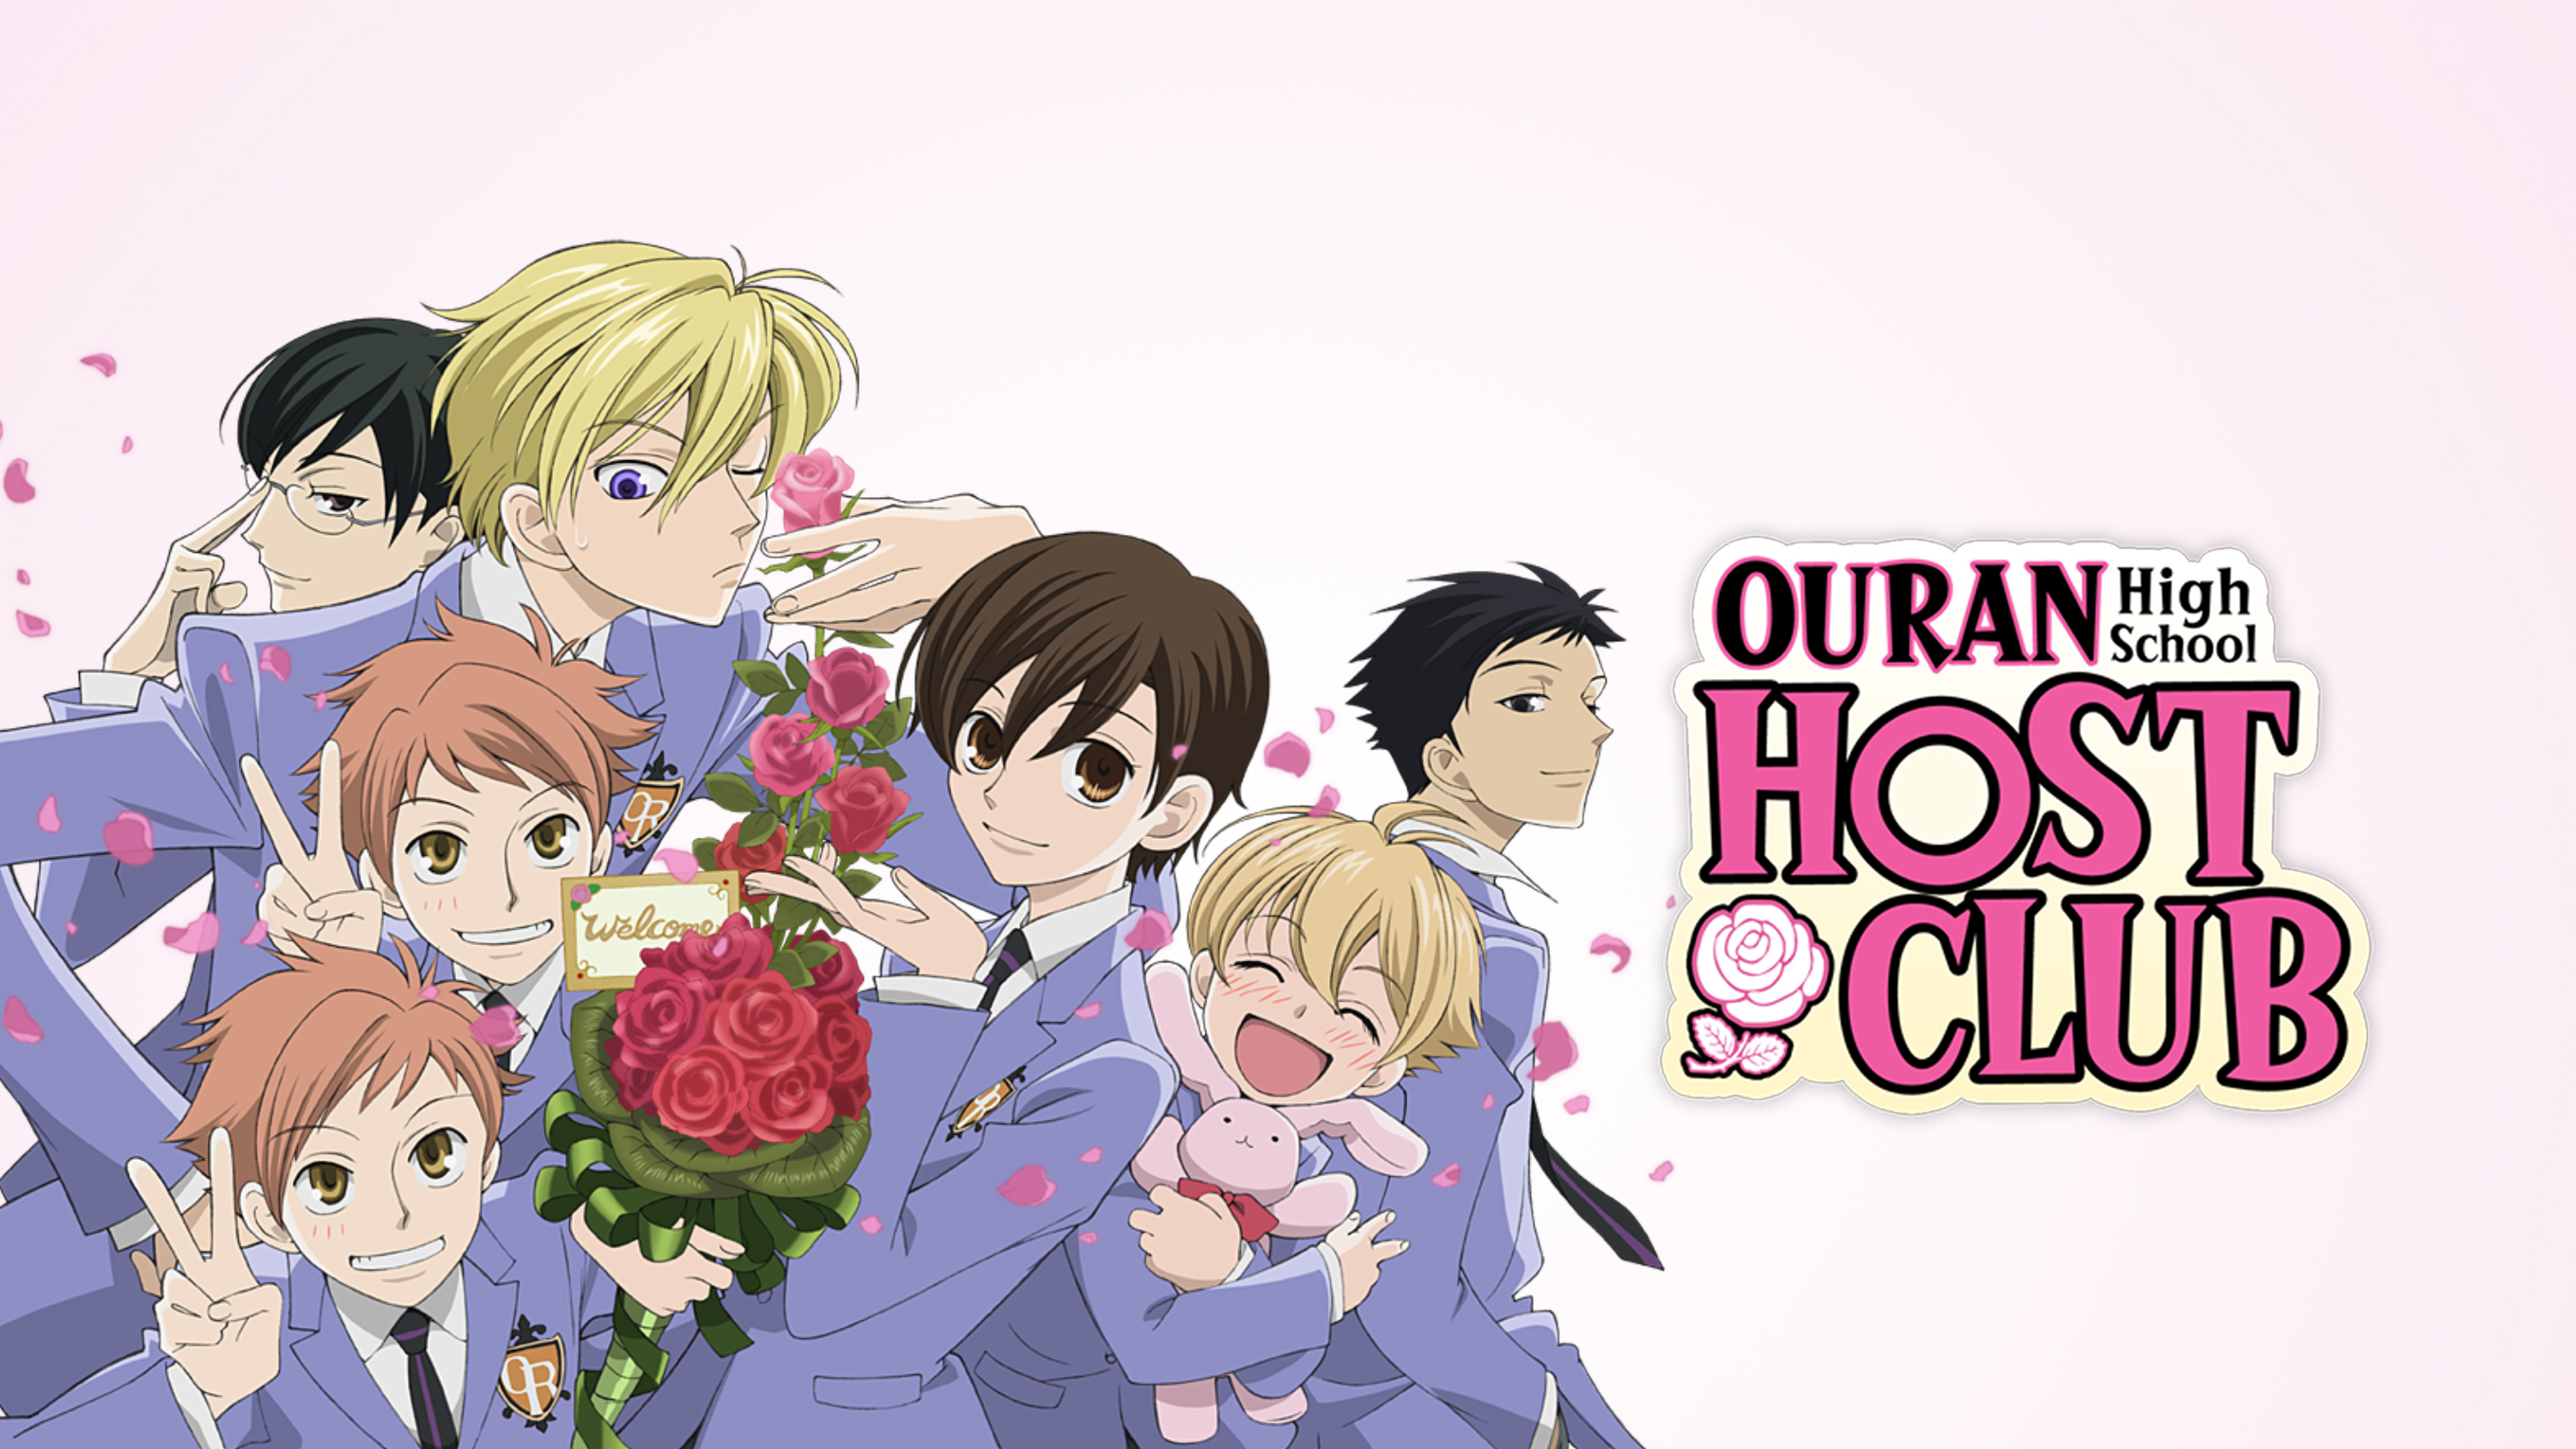 dating simulators ouran high school host club 2 hacked 2